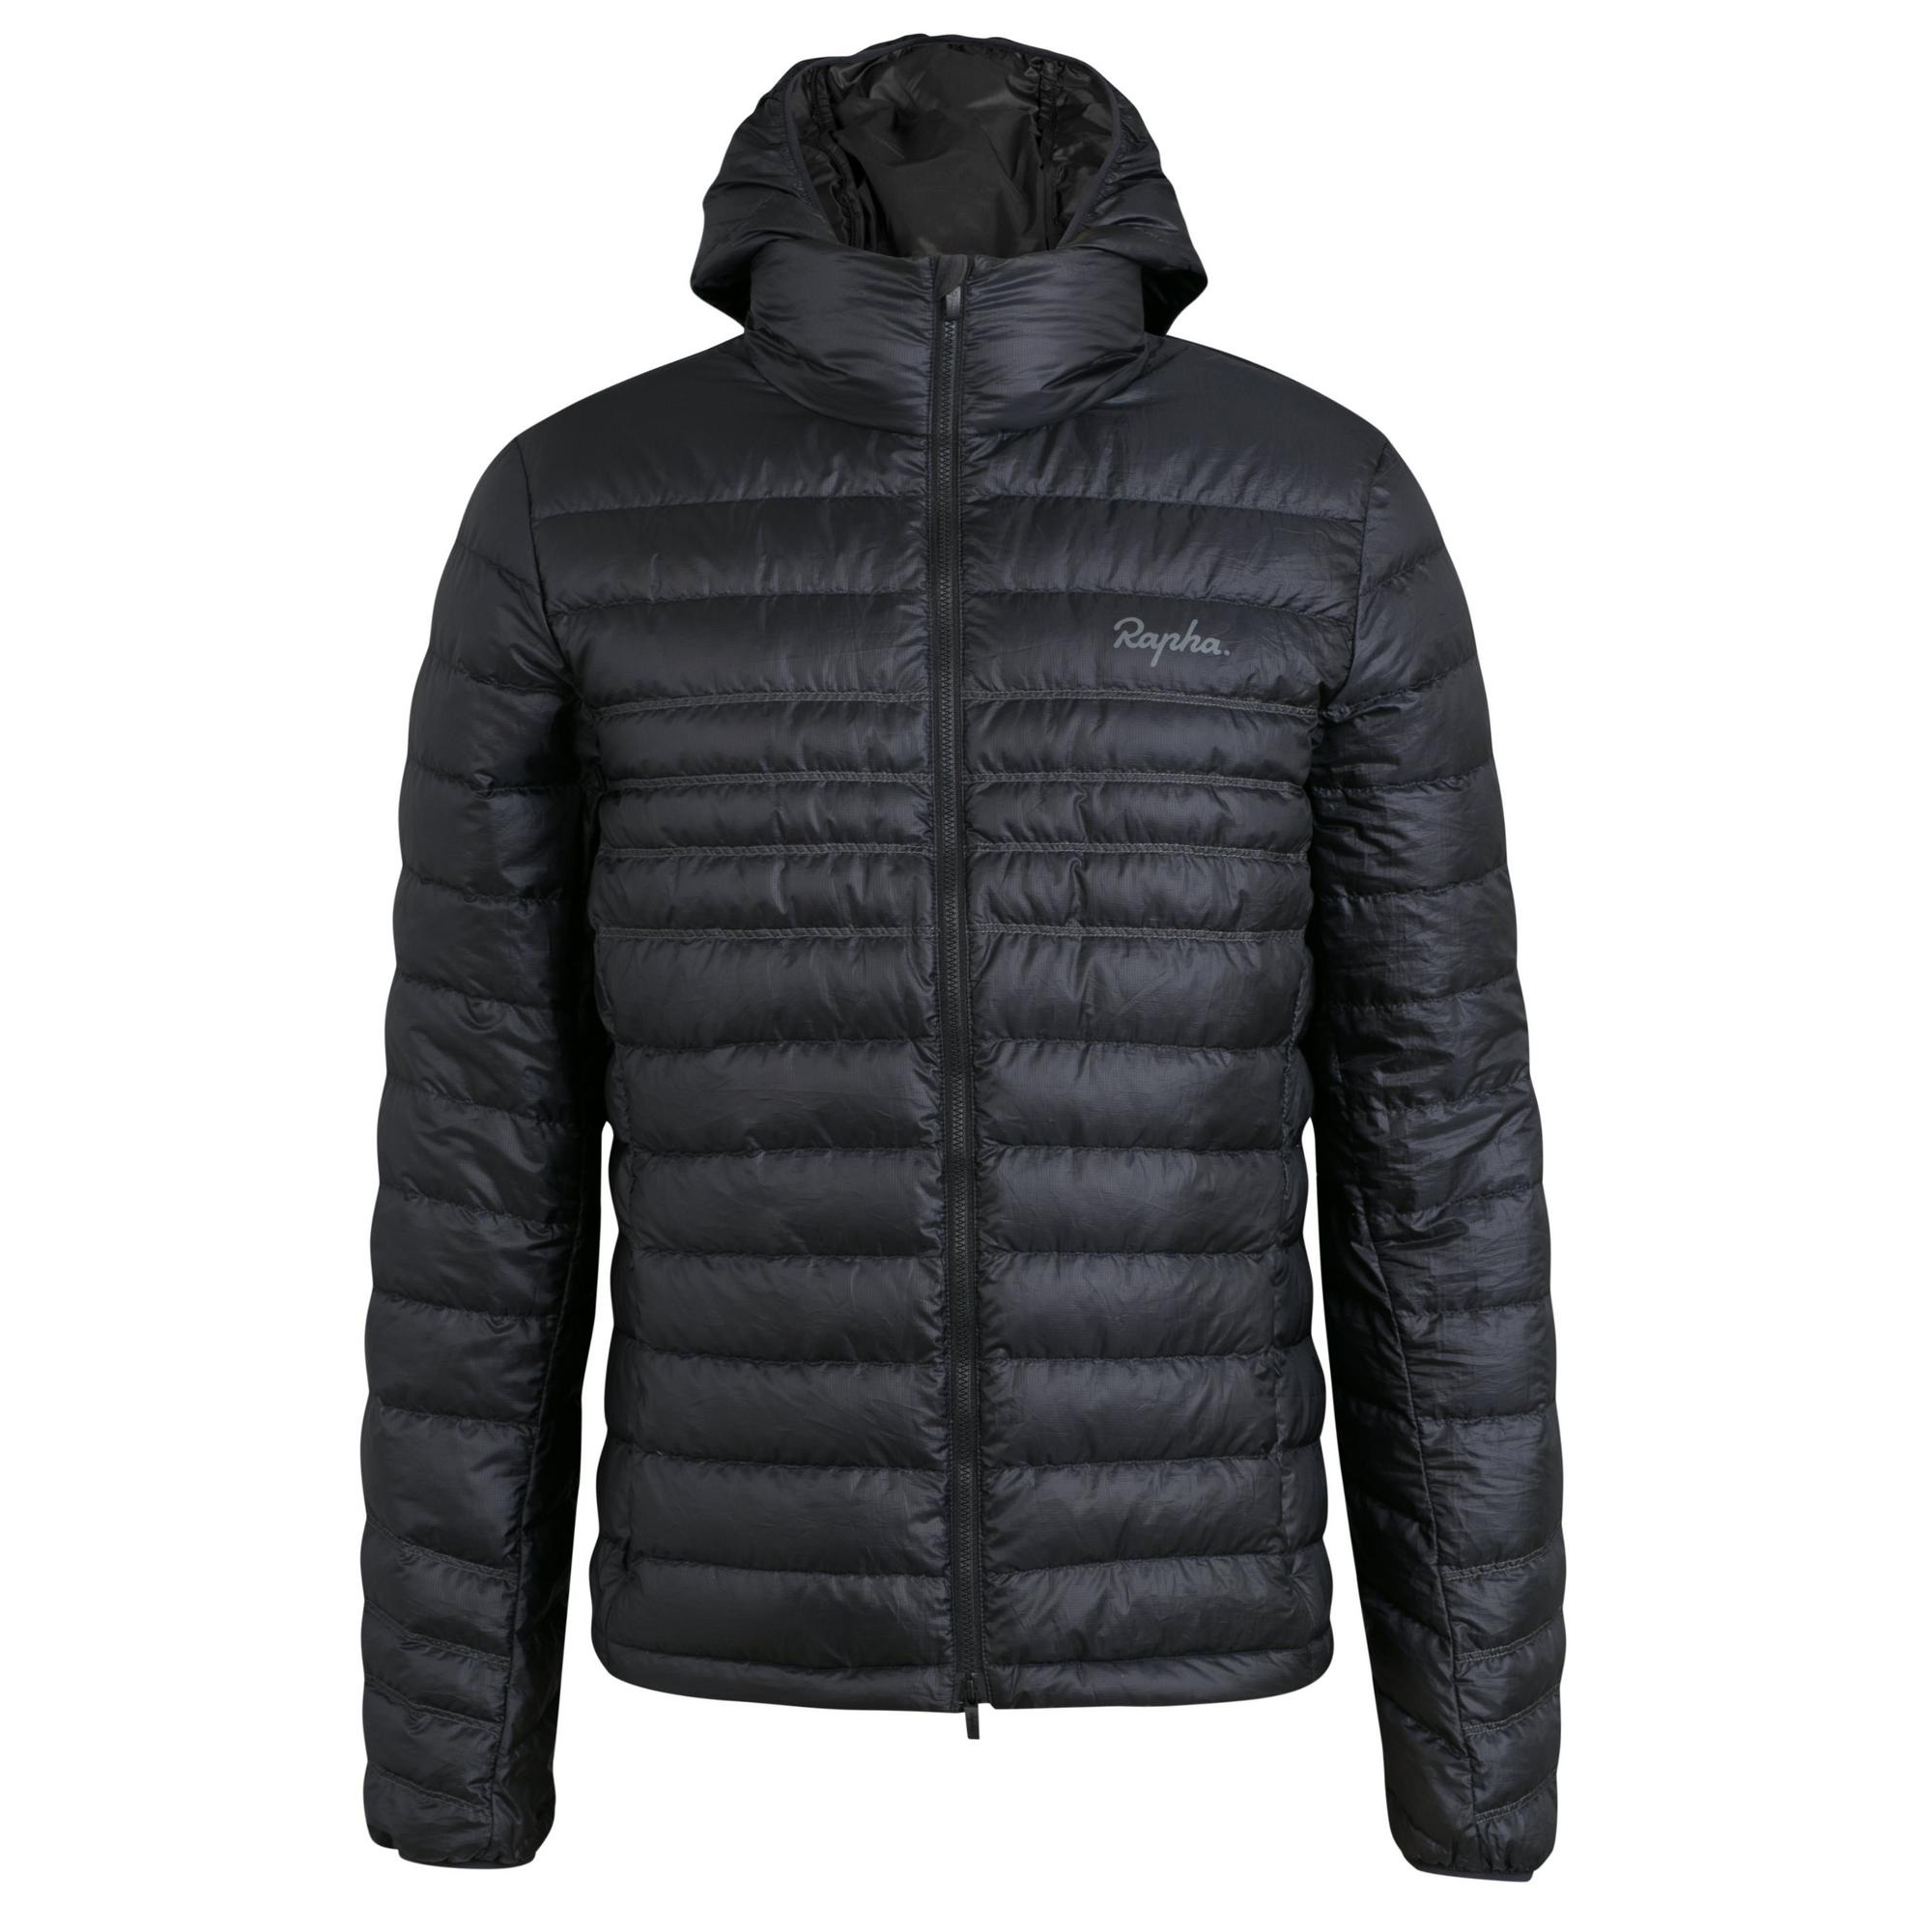 Rapha Explore Down Jacket